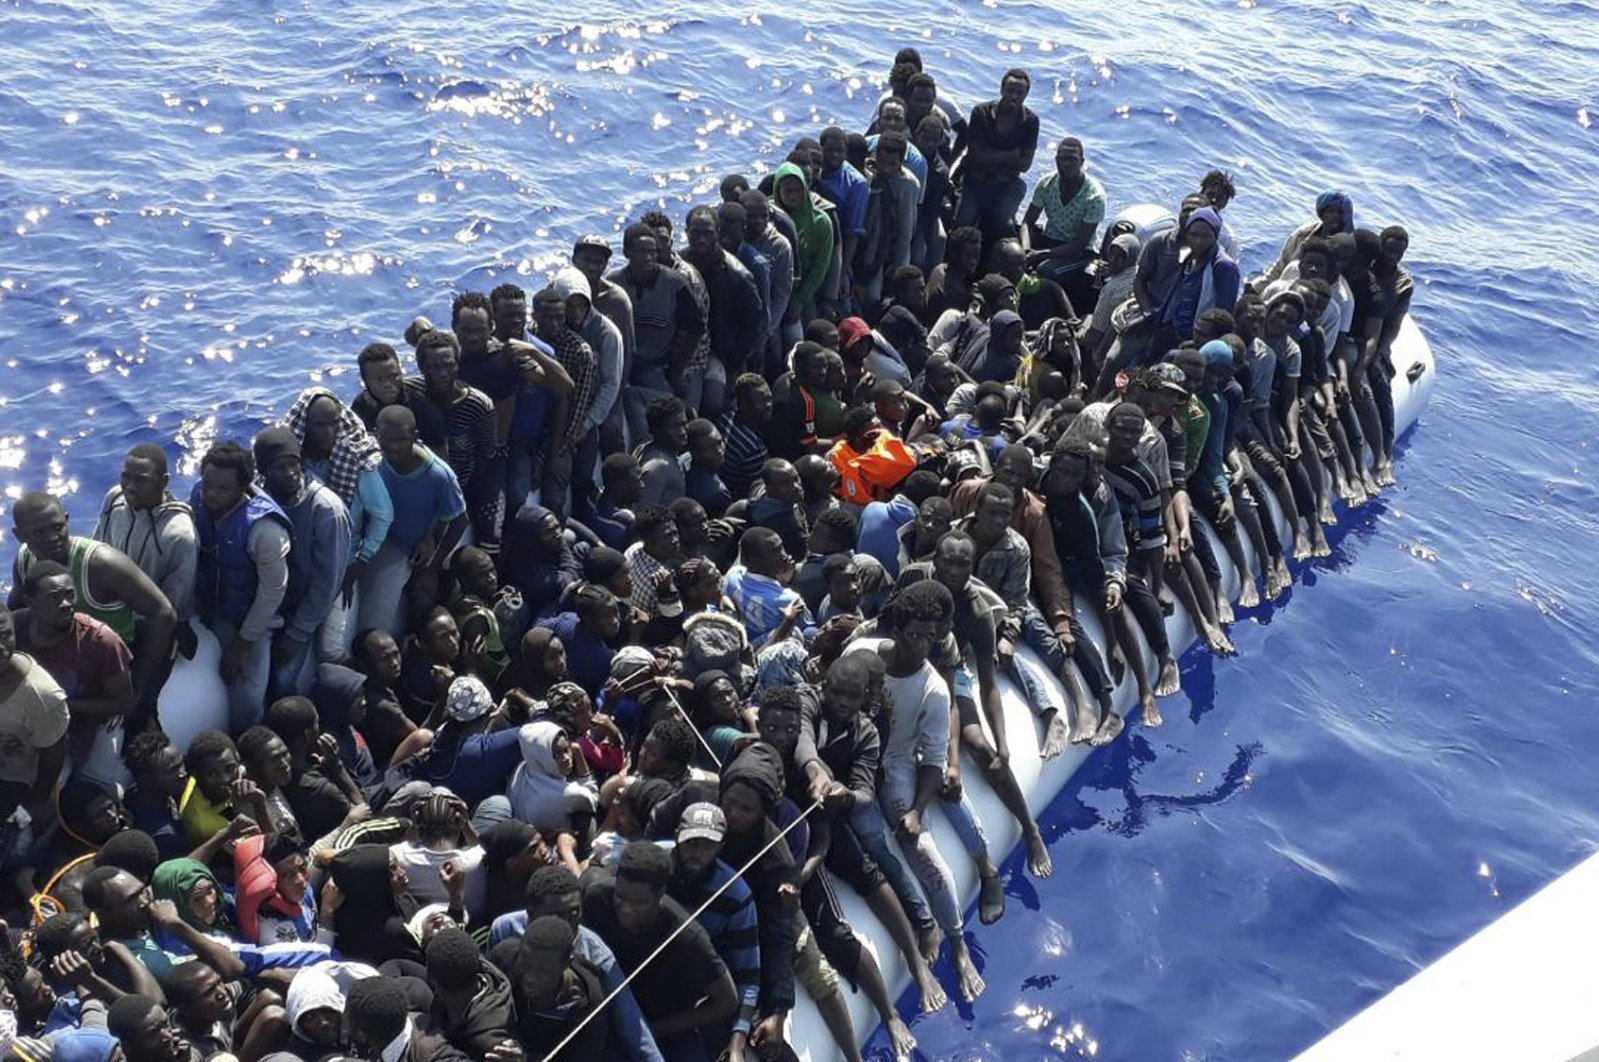 A file photo provided by the Libyan Coast Guard shows migrants on a ship intercepted offshore near the town of Gohneima, east of the capital, Tripoli, June 24, 2018. (AP Photo)